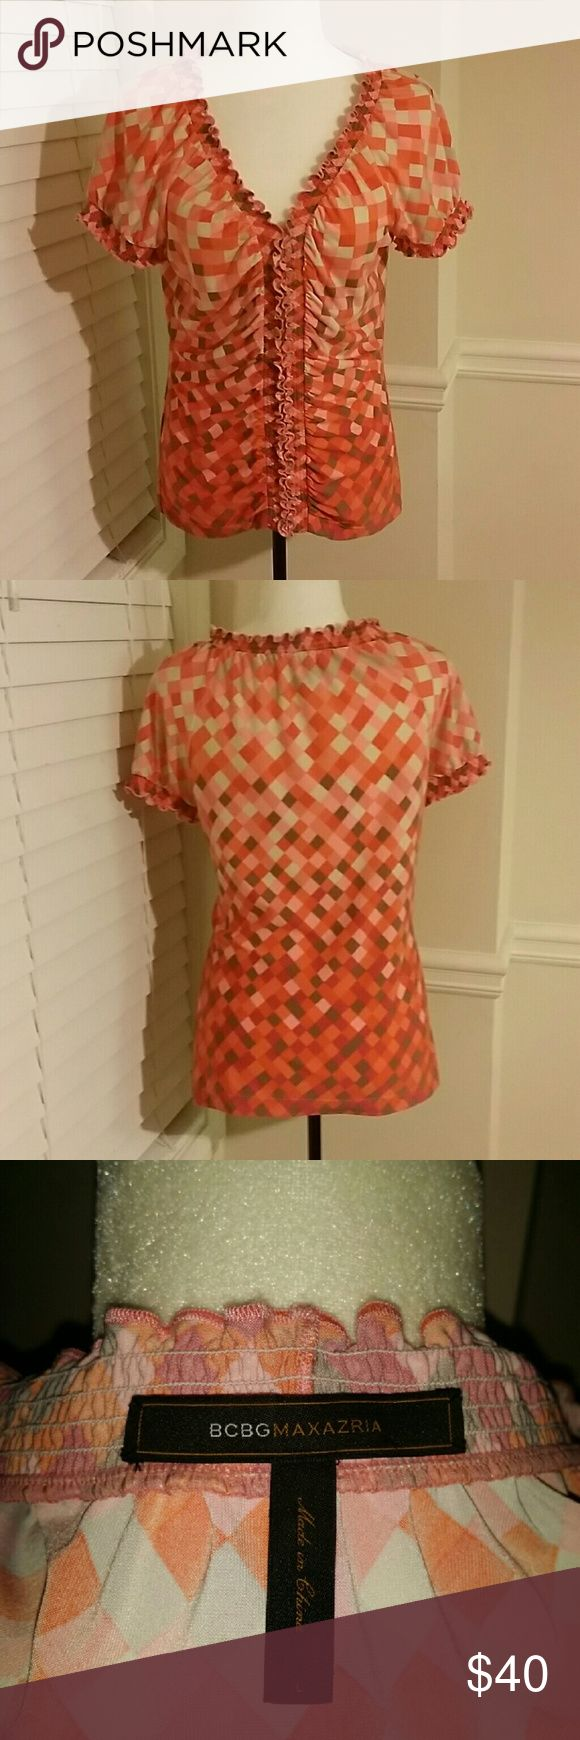 BCBGMAXAZRIA Top Fabric is 94% polyester and 6% spandex.  Various shades of orange, pink, tan/taupe and white. BCBGMaxAzria Tops